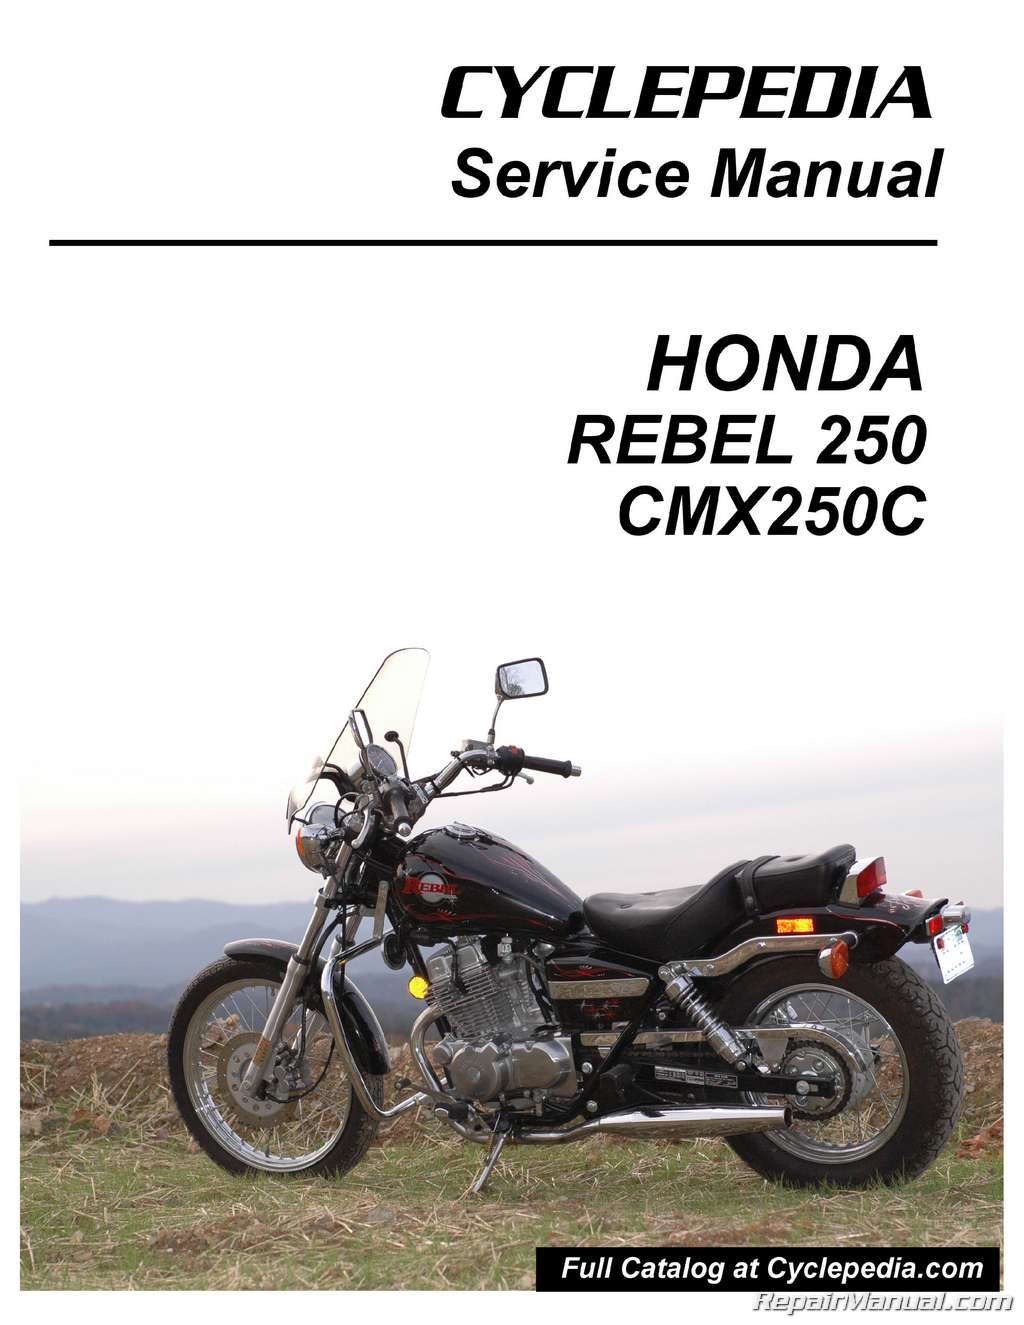 2008 honda cmx250c rebel wiring diagram trusted wiring diagrams u2022 rh weneedradio org Honda Shadow 750 Honda Shadow Phantom